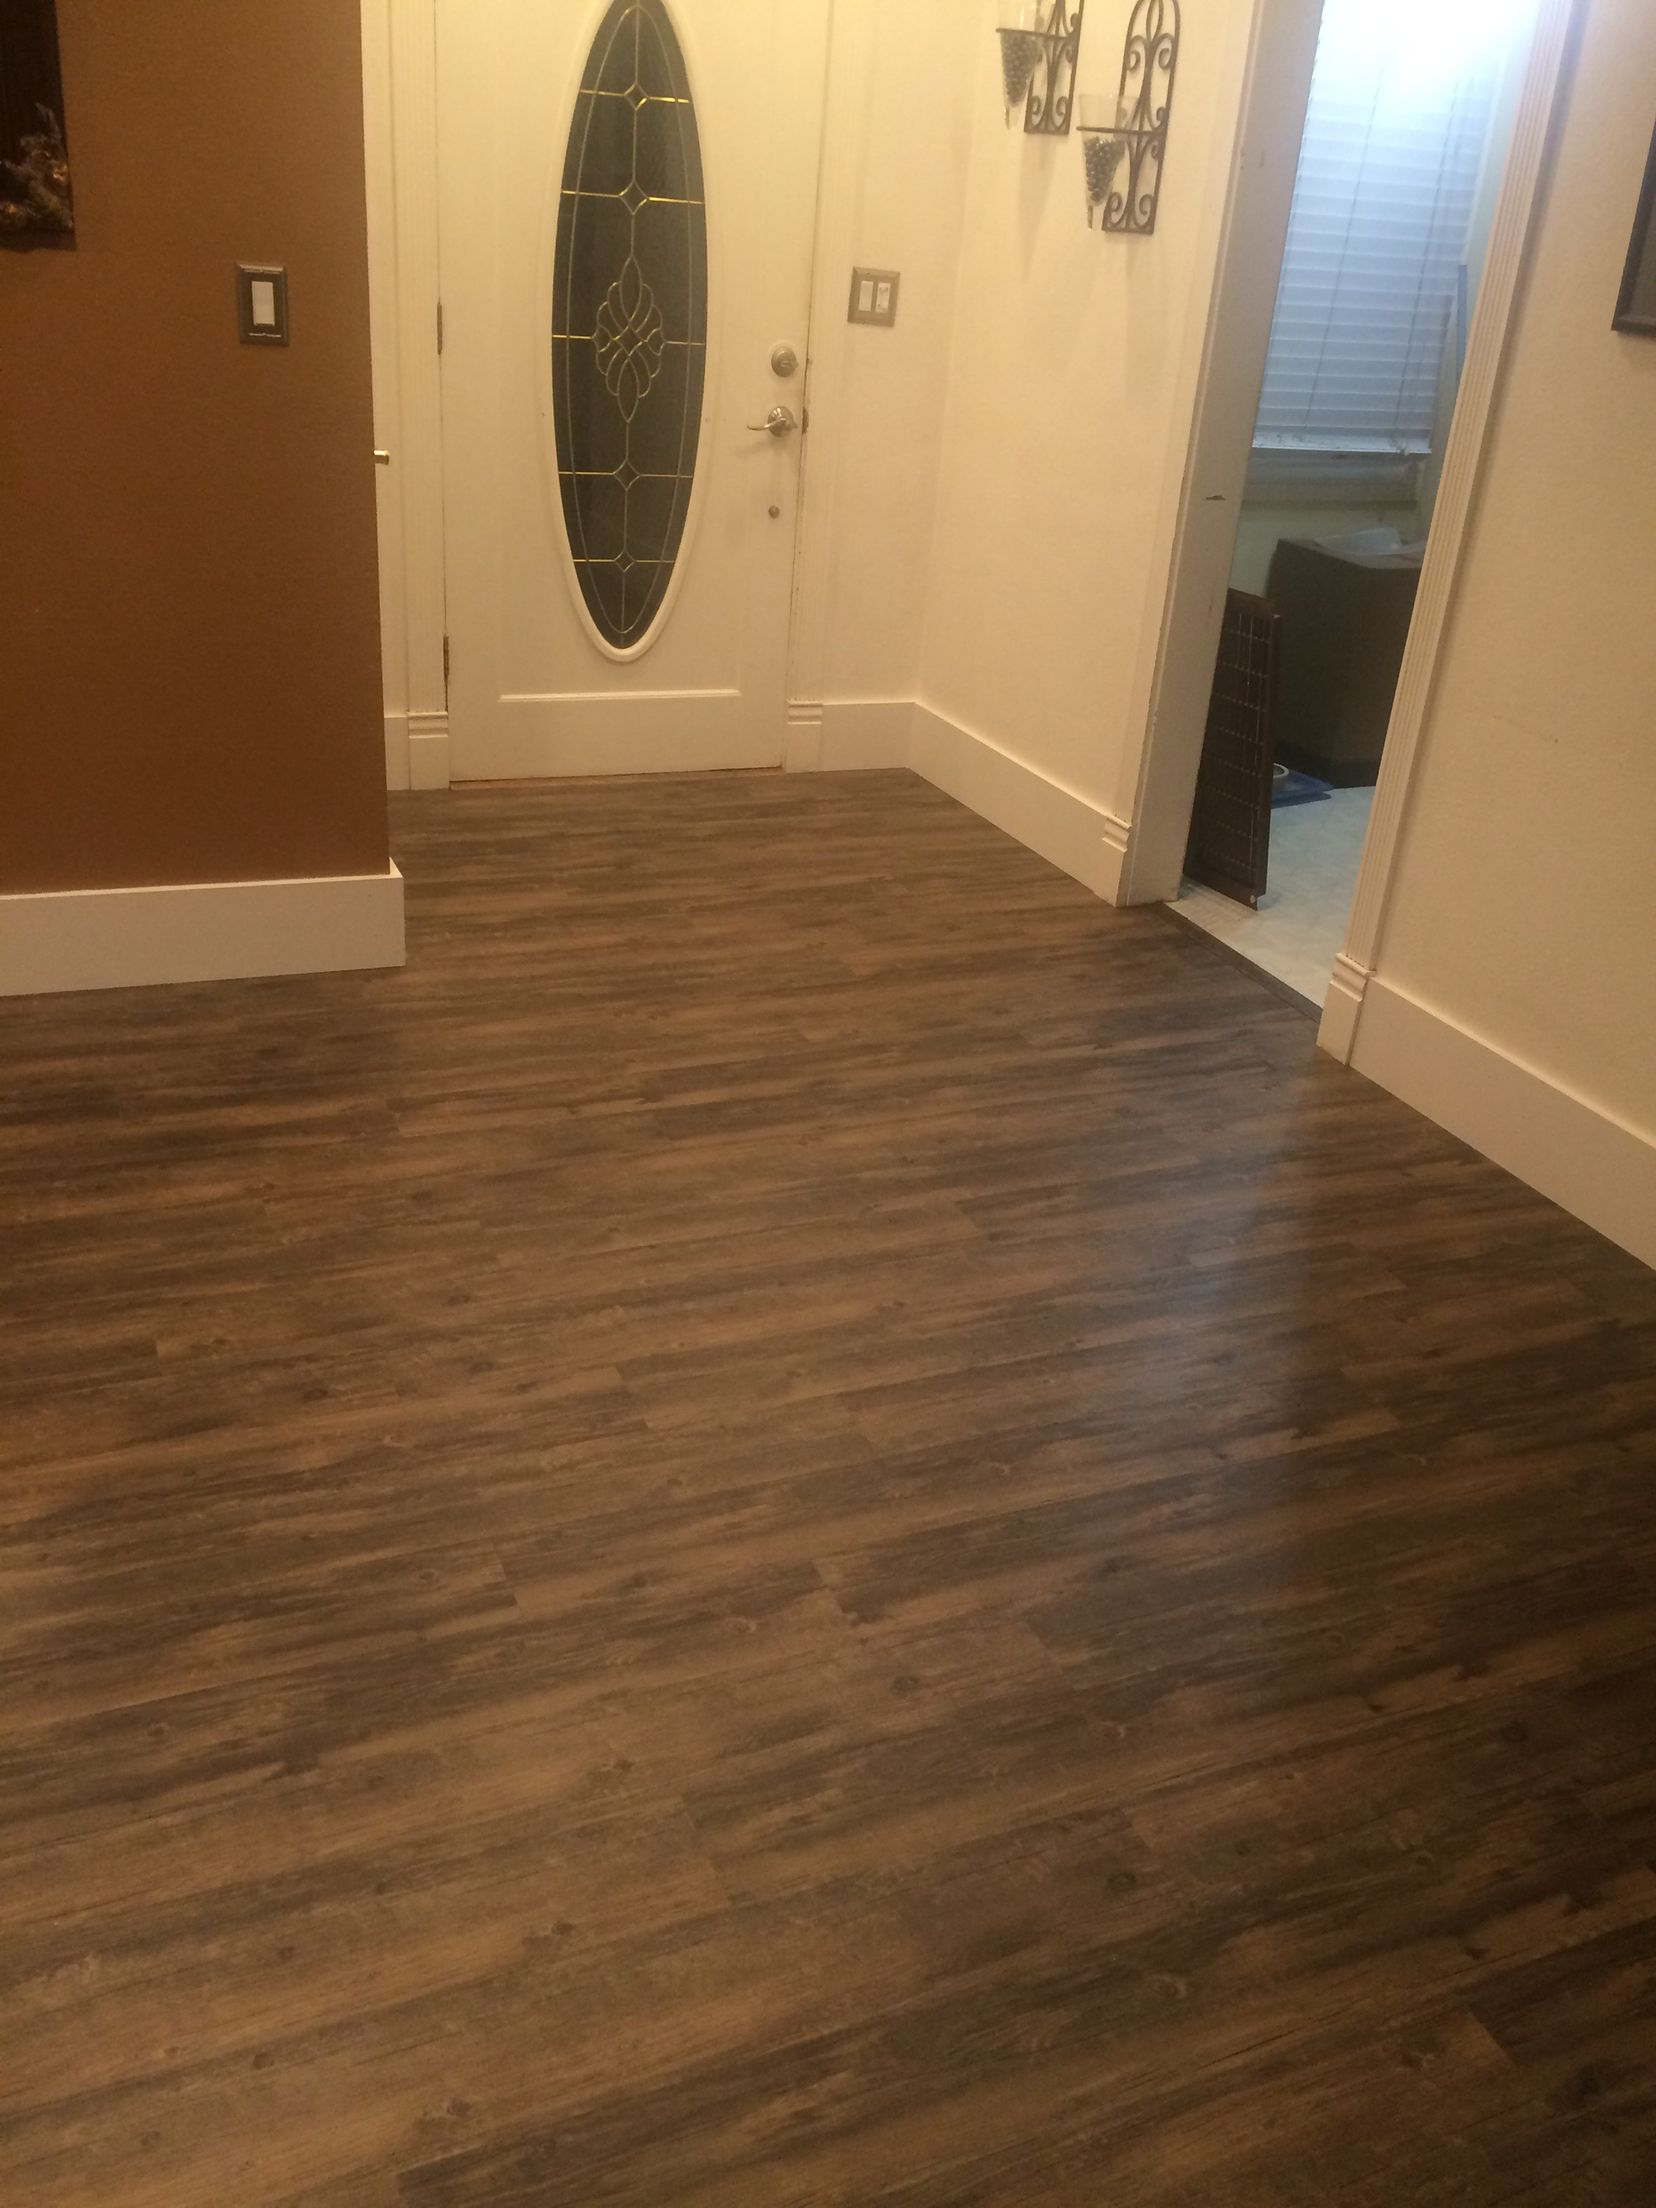 Waterproof Laminate Flooring. Laminate flooring is a great